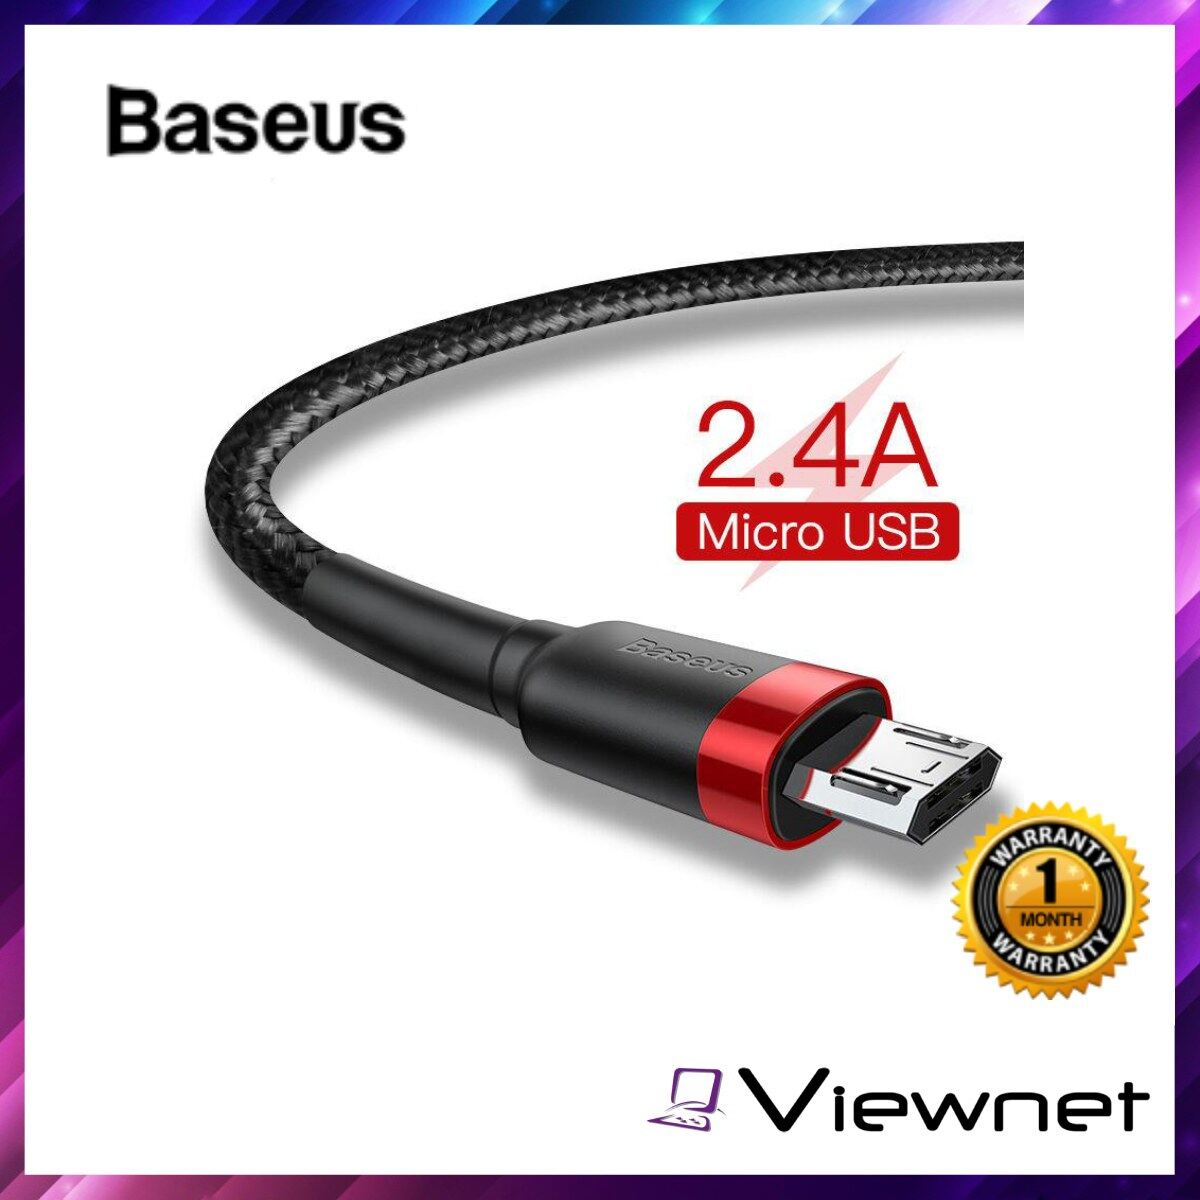 Baseus Micro USB Cafule Cable 0.5M / 1M / 2M USB, Aluminum Ally + TPE + HD Nylon Braided Wire, 480Mbps Transmission Speed